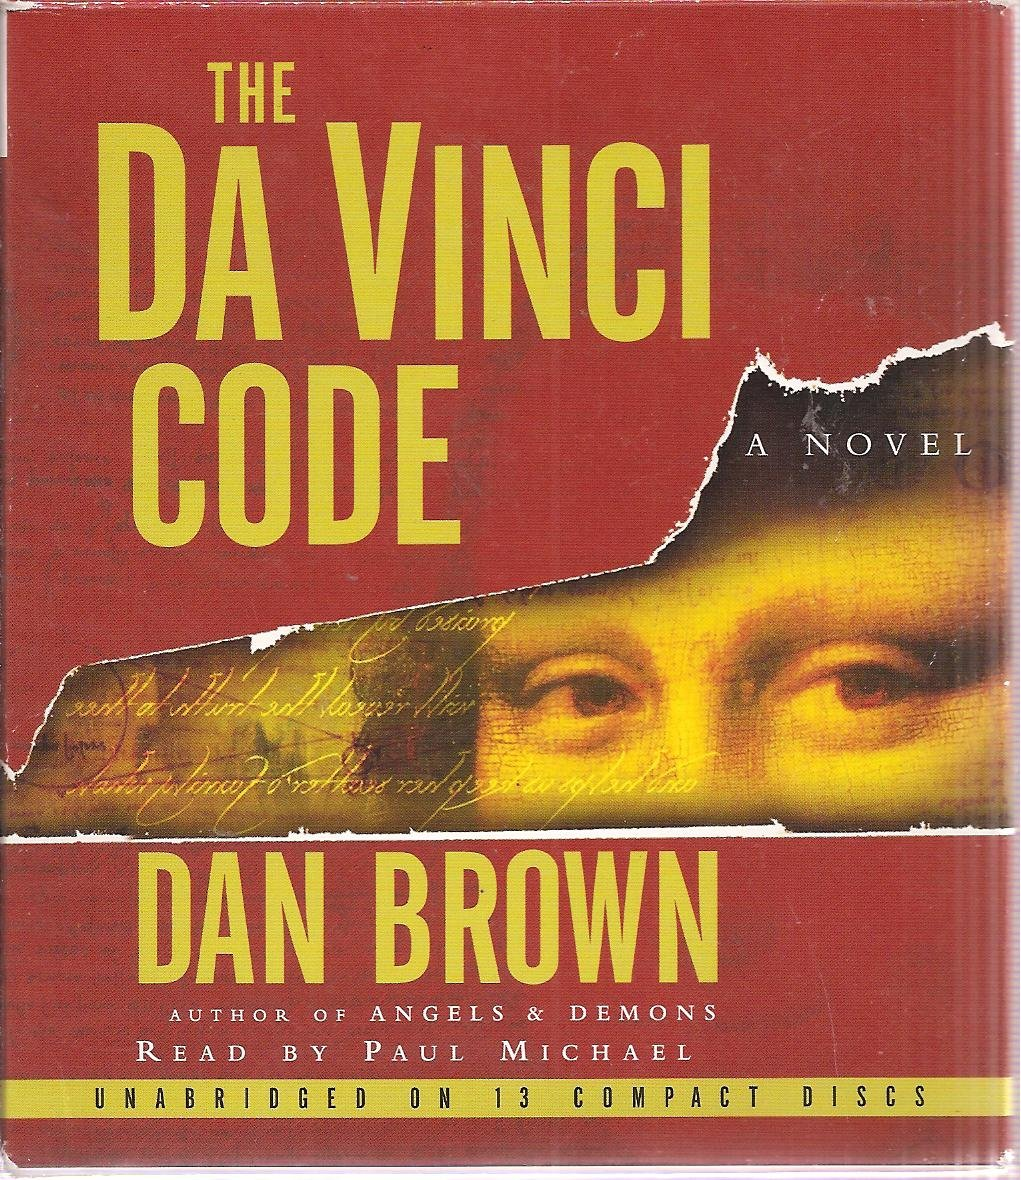 The da vinci code unabridged on 13 compact discs dan brown paul the da vinci code unabridged on 13 compact discs dan brown paul michael amazon books buycottarizona